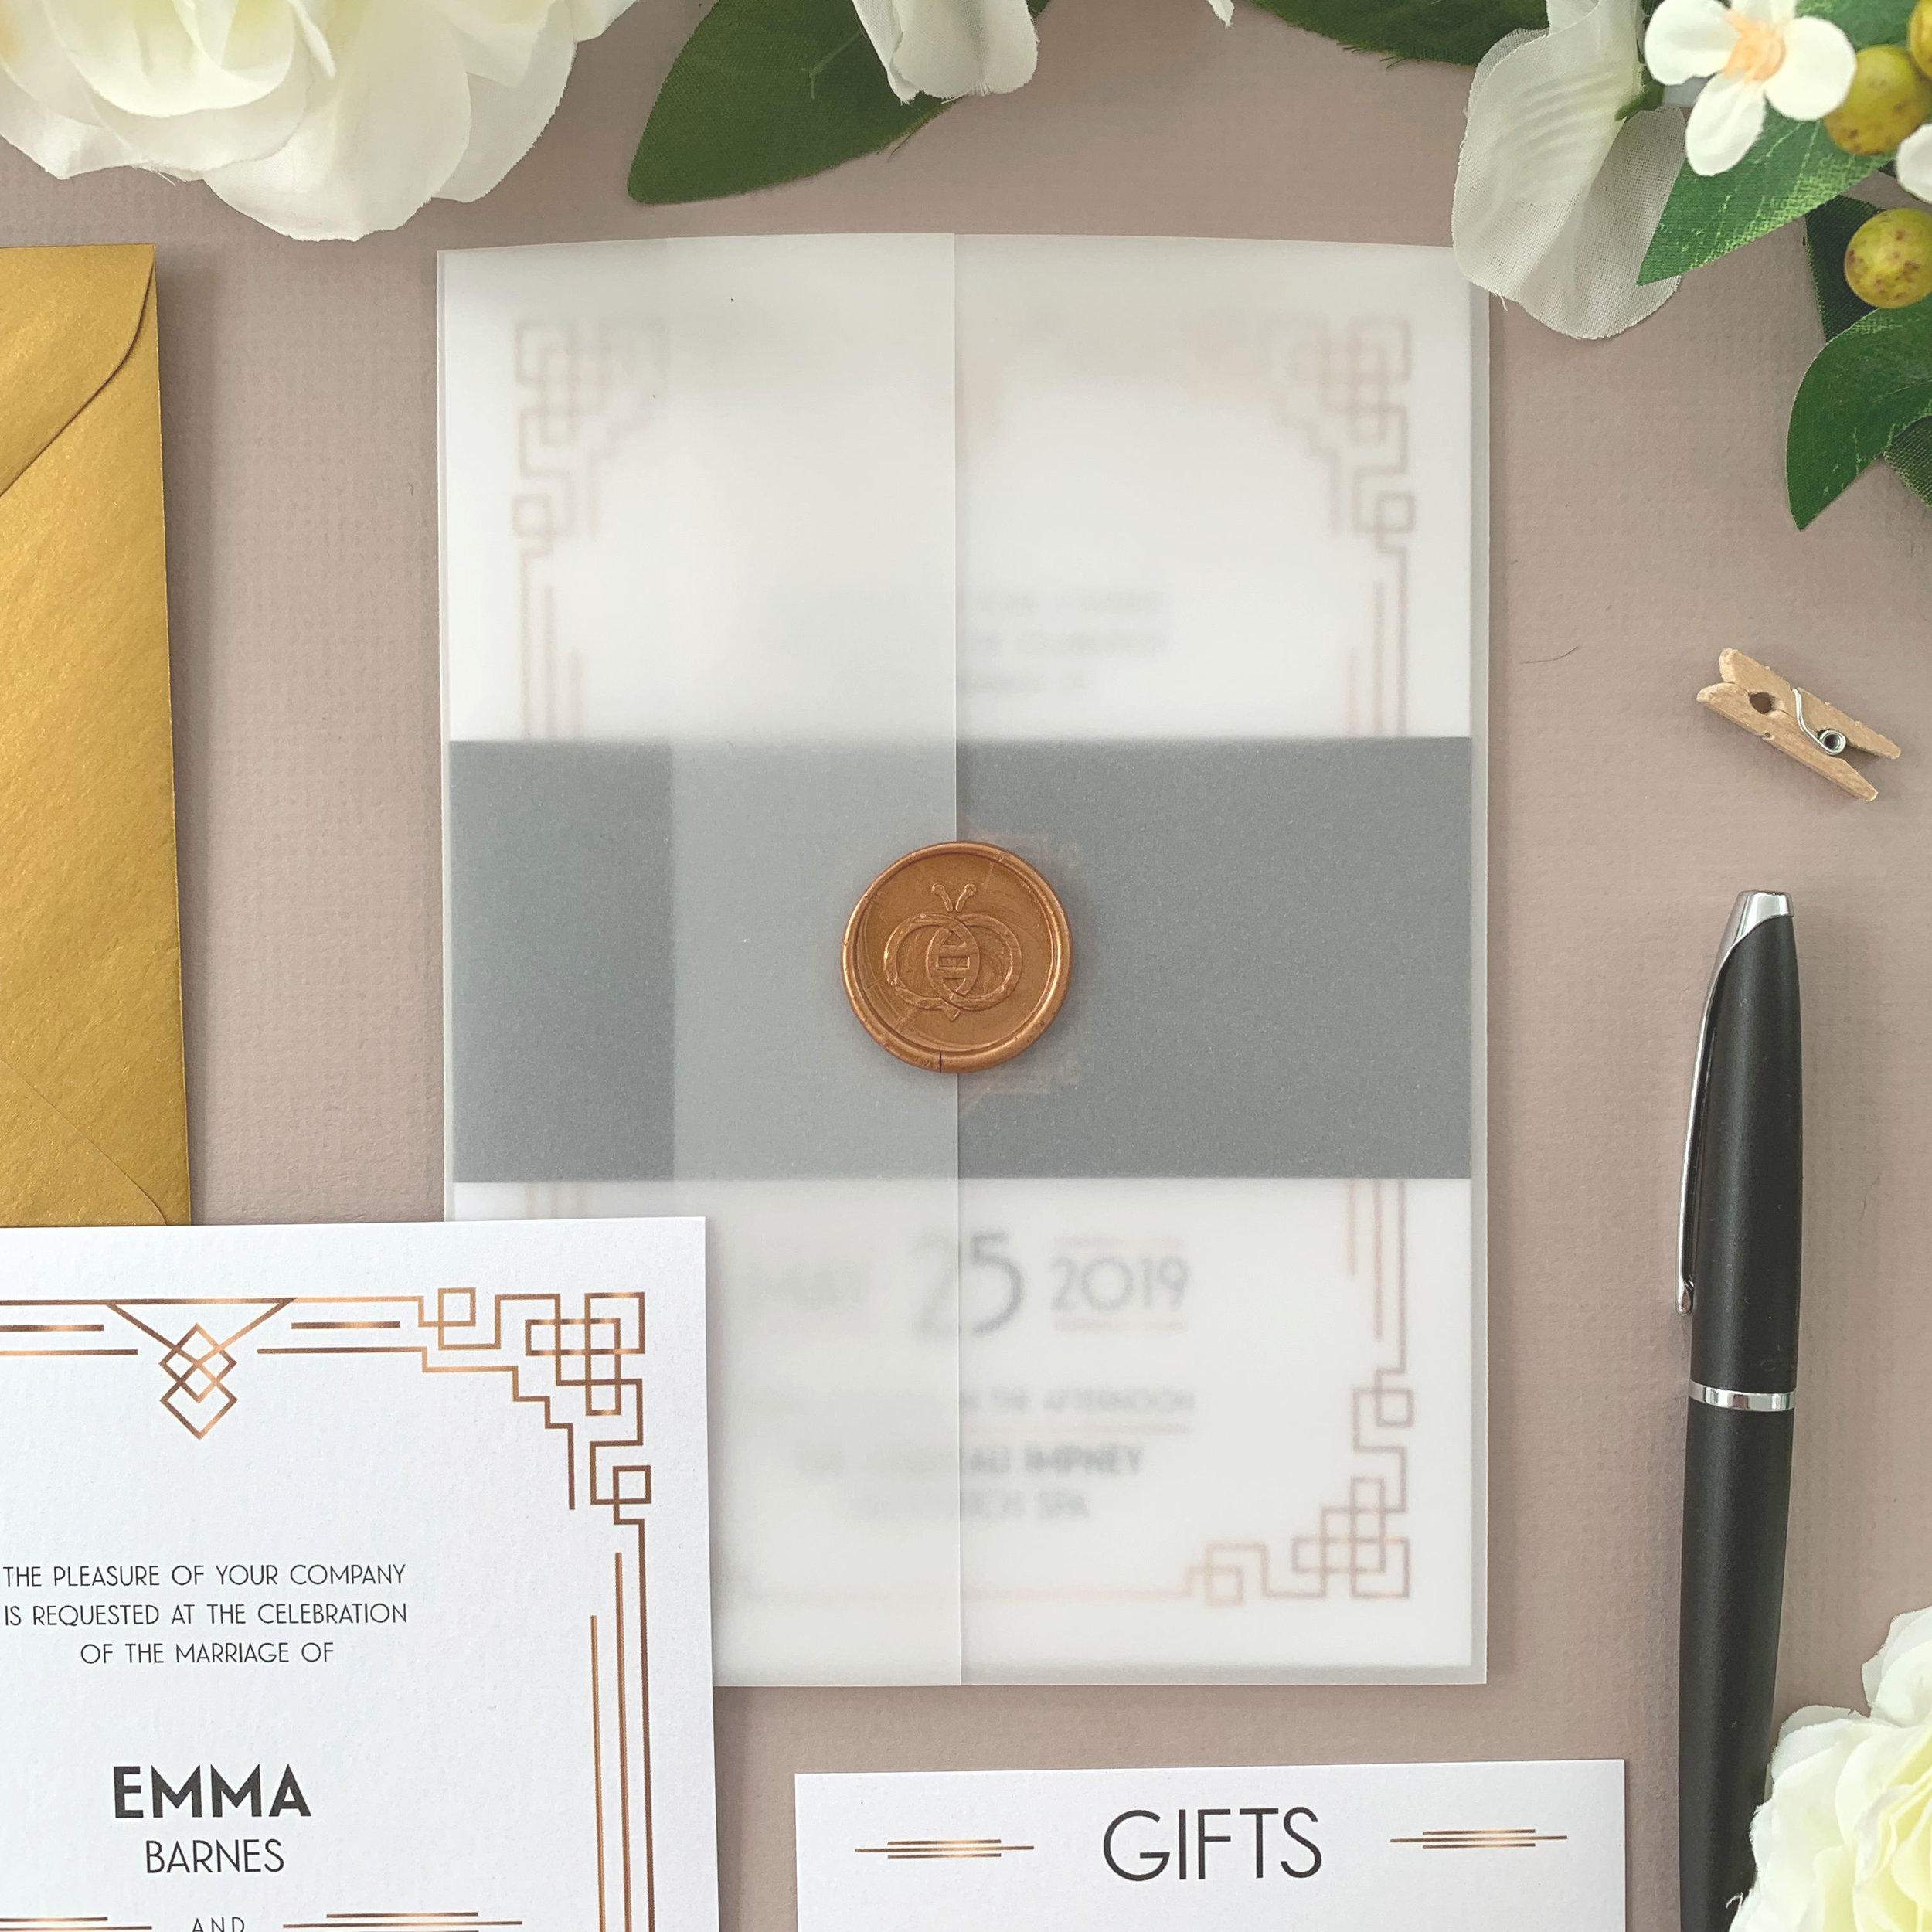 Finishing Options - If opting for a suite of items (invite, RSVP and information cards), these can be bound in a number of ways.You can add a paper belly band, or add a vellum jacket too with the option of a personalised sticker or self-adhesive wax seal to close the package.Invitations can either be provided with the loose components ready for you to assemble, or opt for us to assemble to save on time.